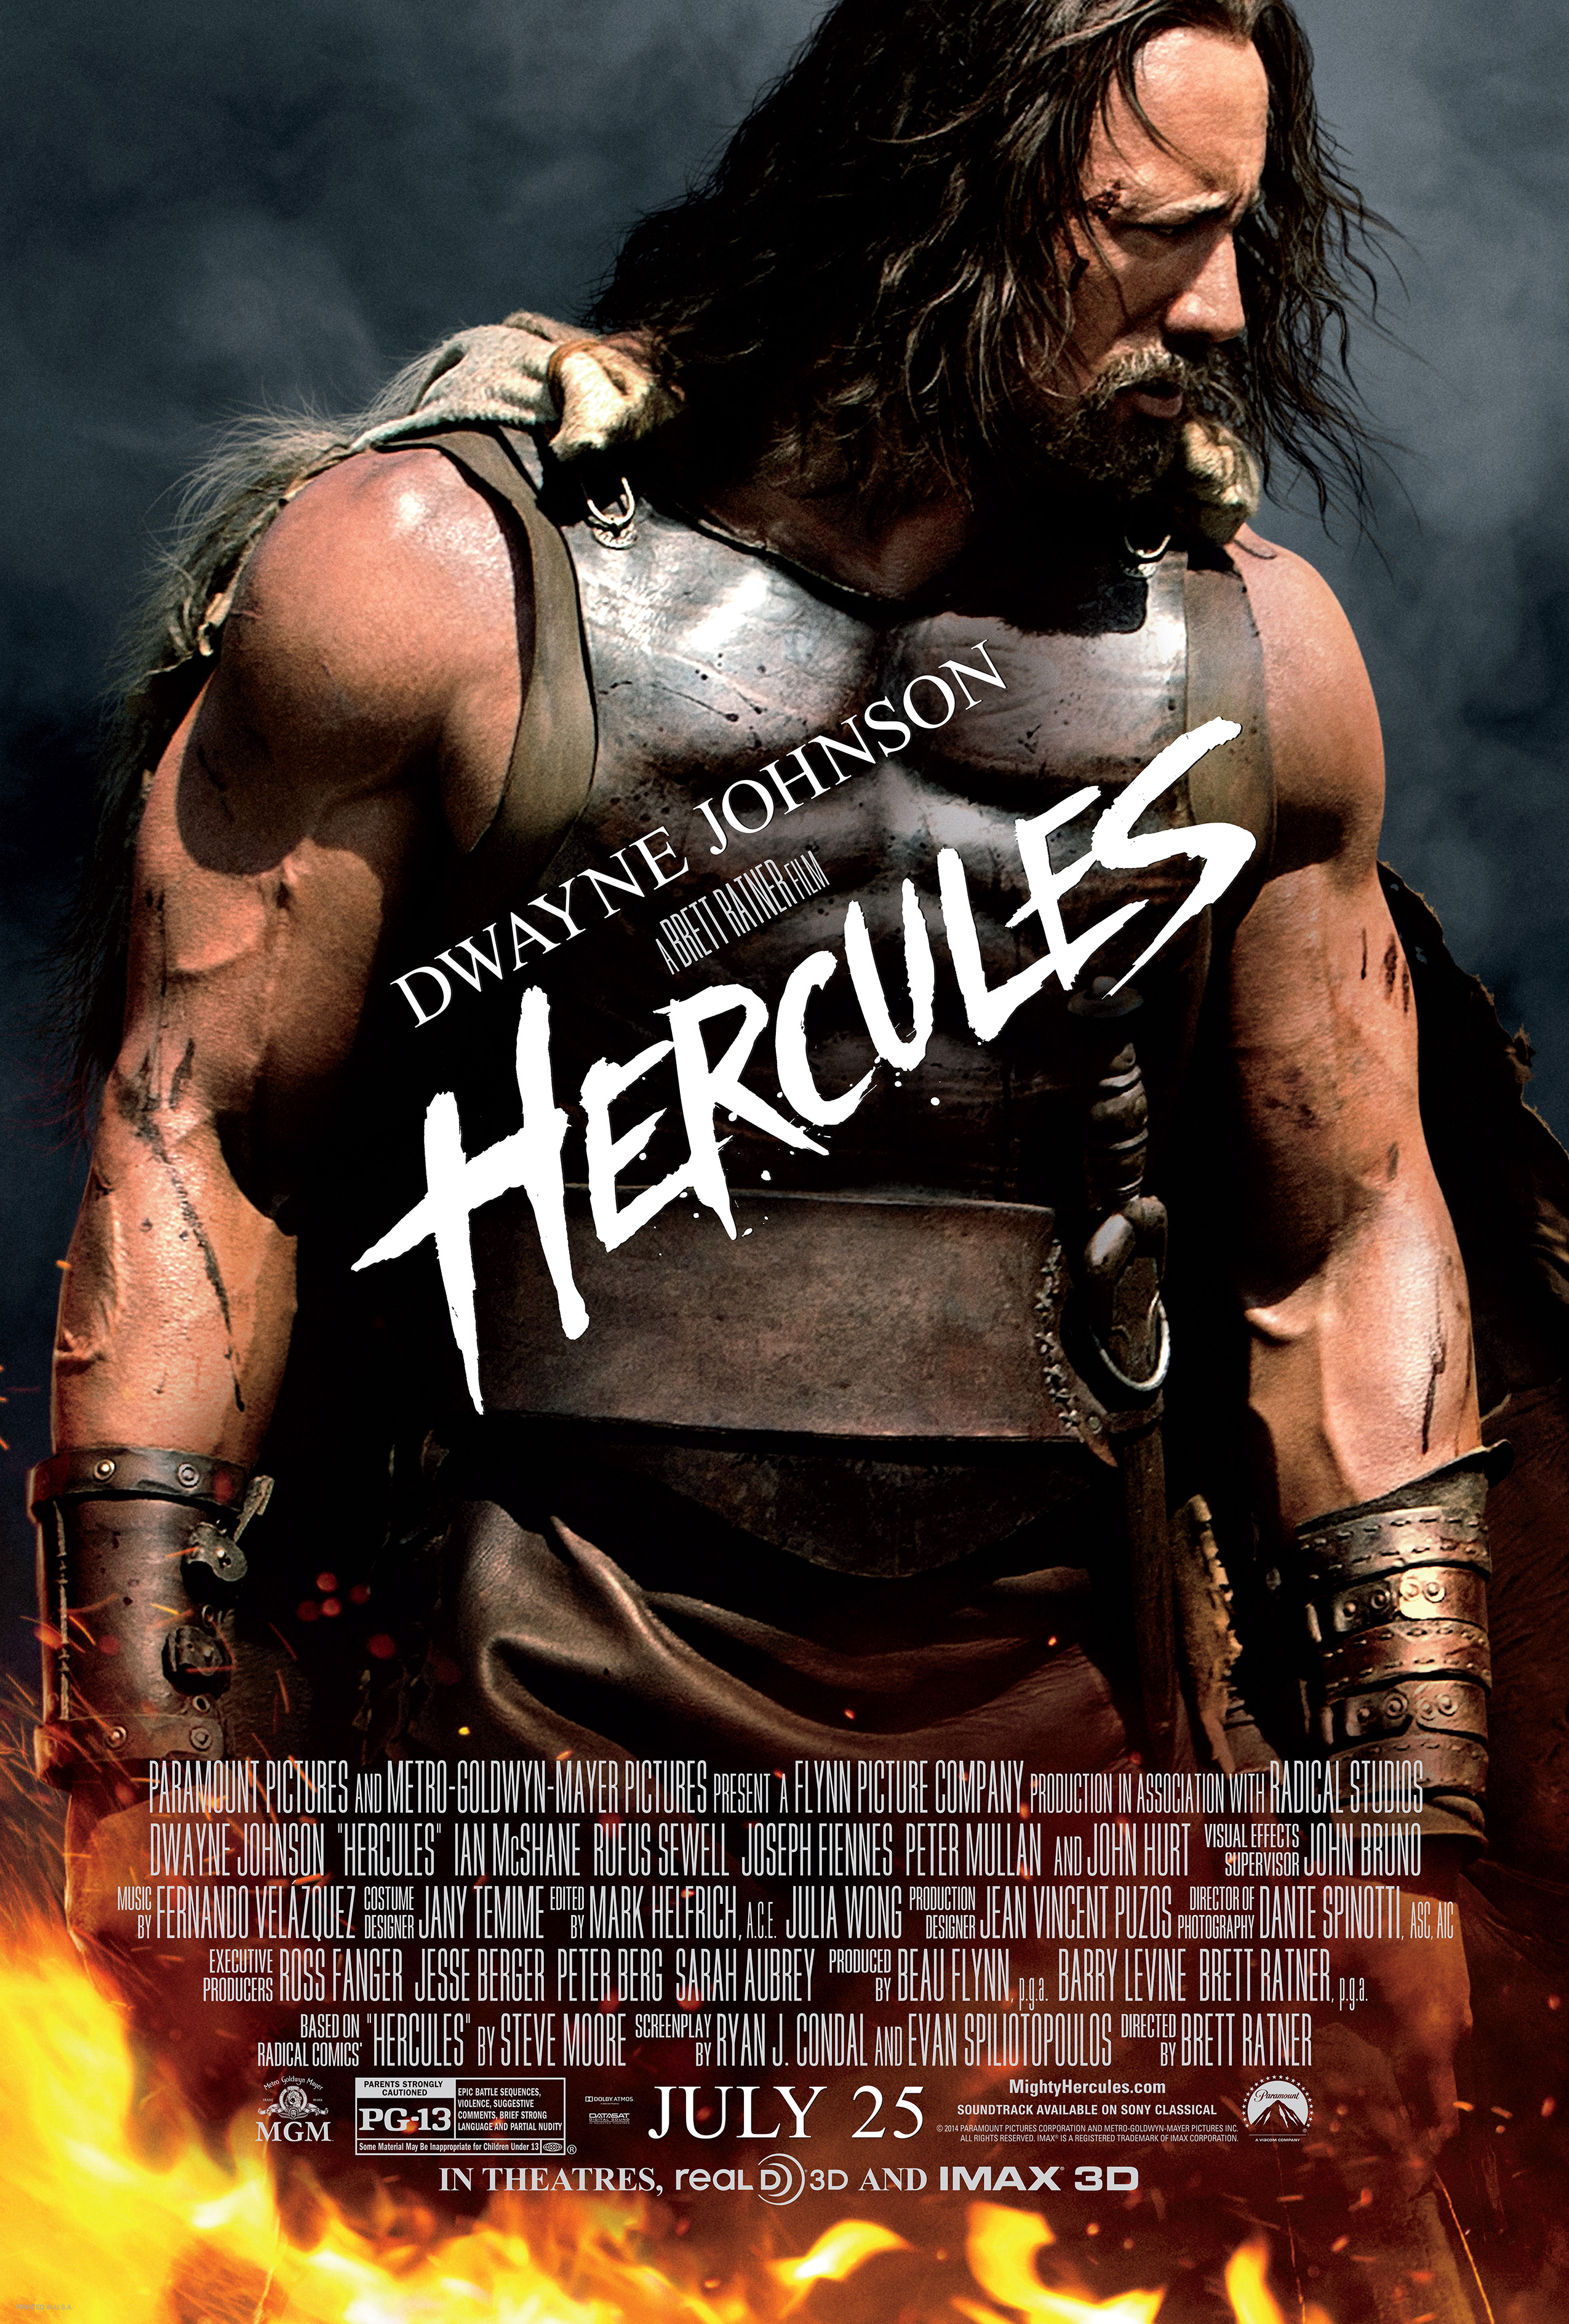 Hercules  2014  on Moviepedia  Information  reviews  blogs  and more